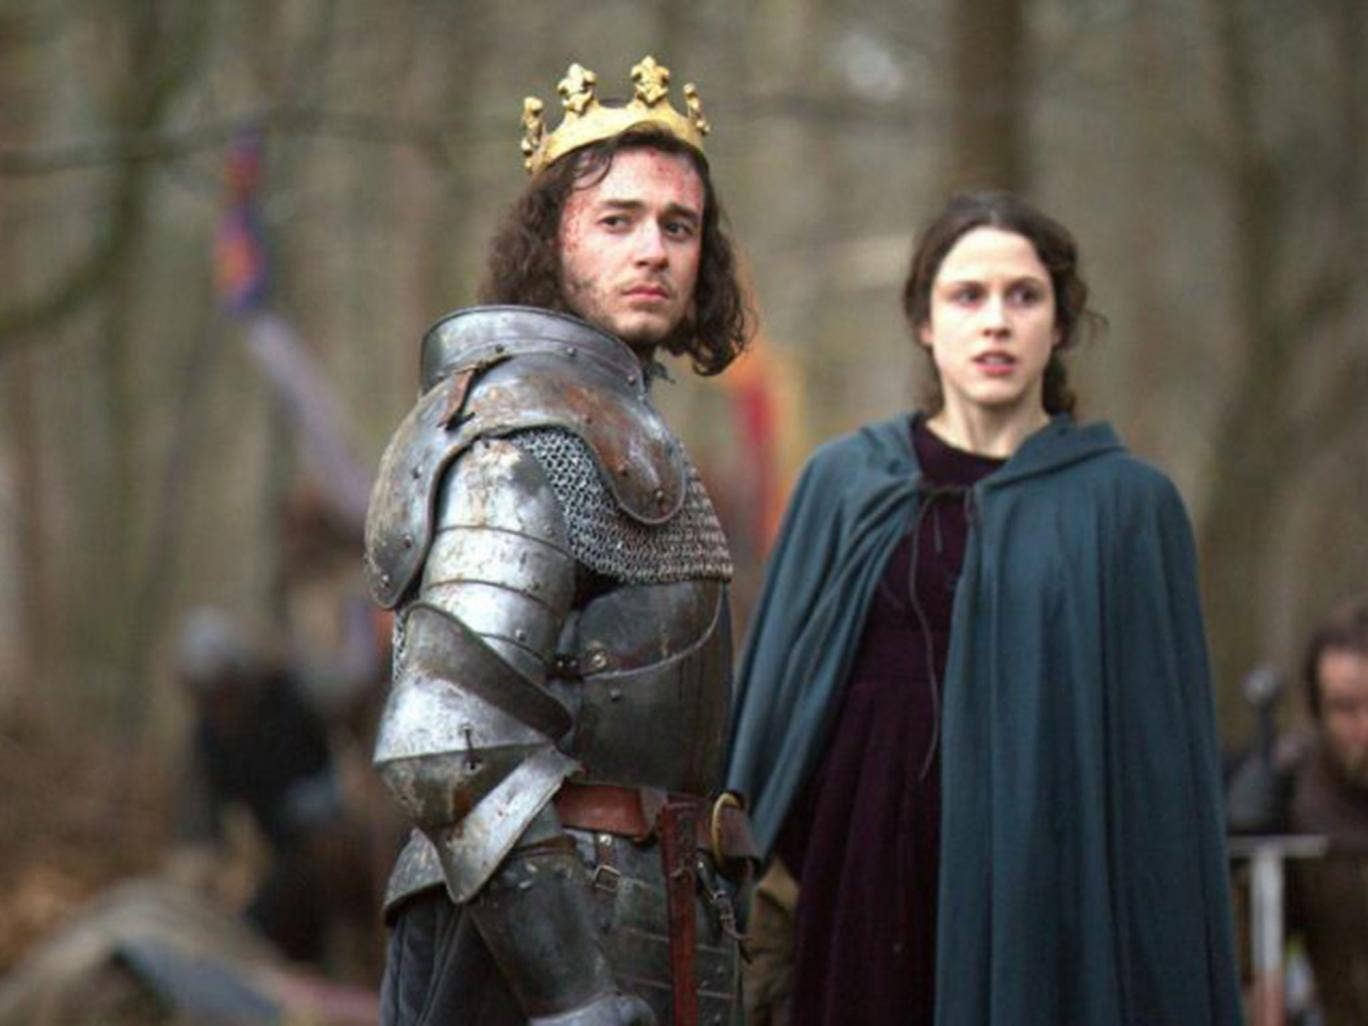 Mother courage: Margaret Beaufort as portrayed in the BBC's The White Queen